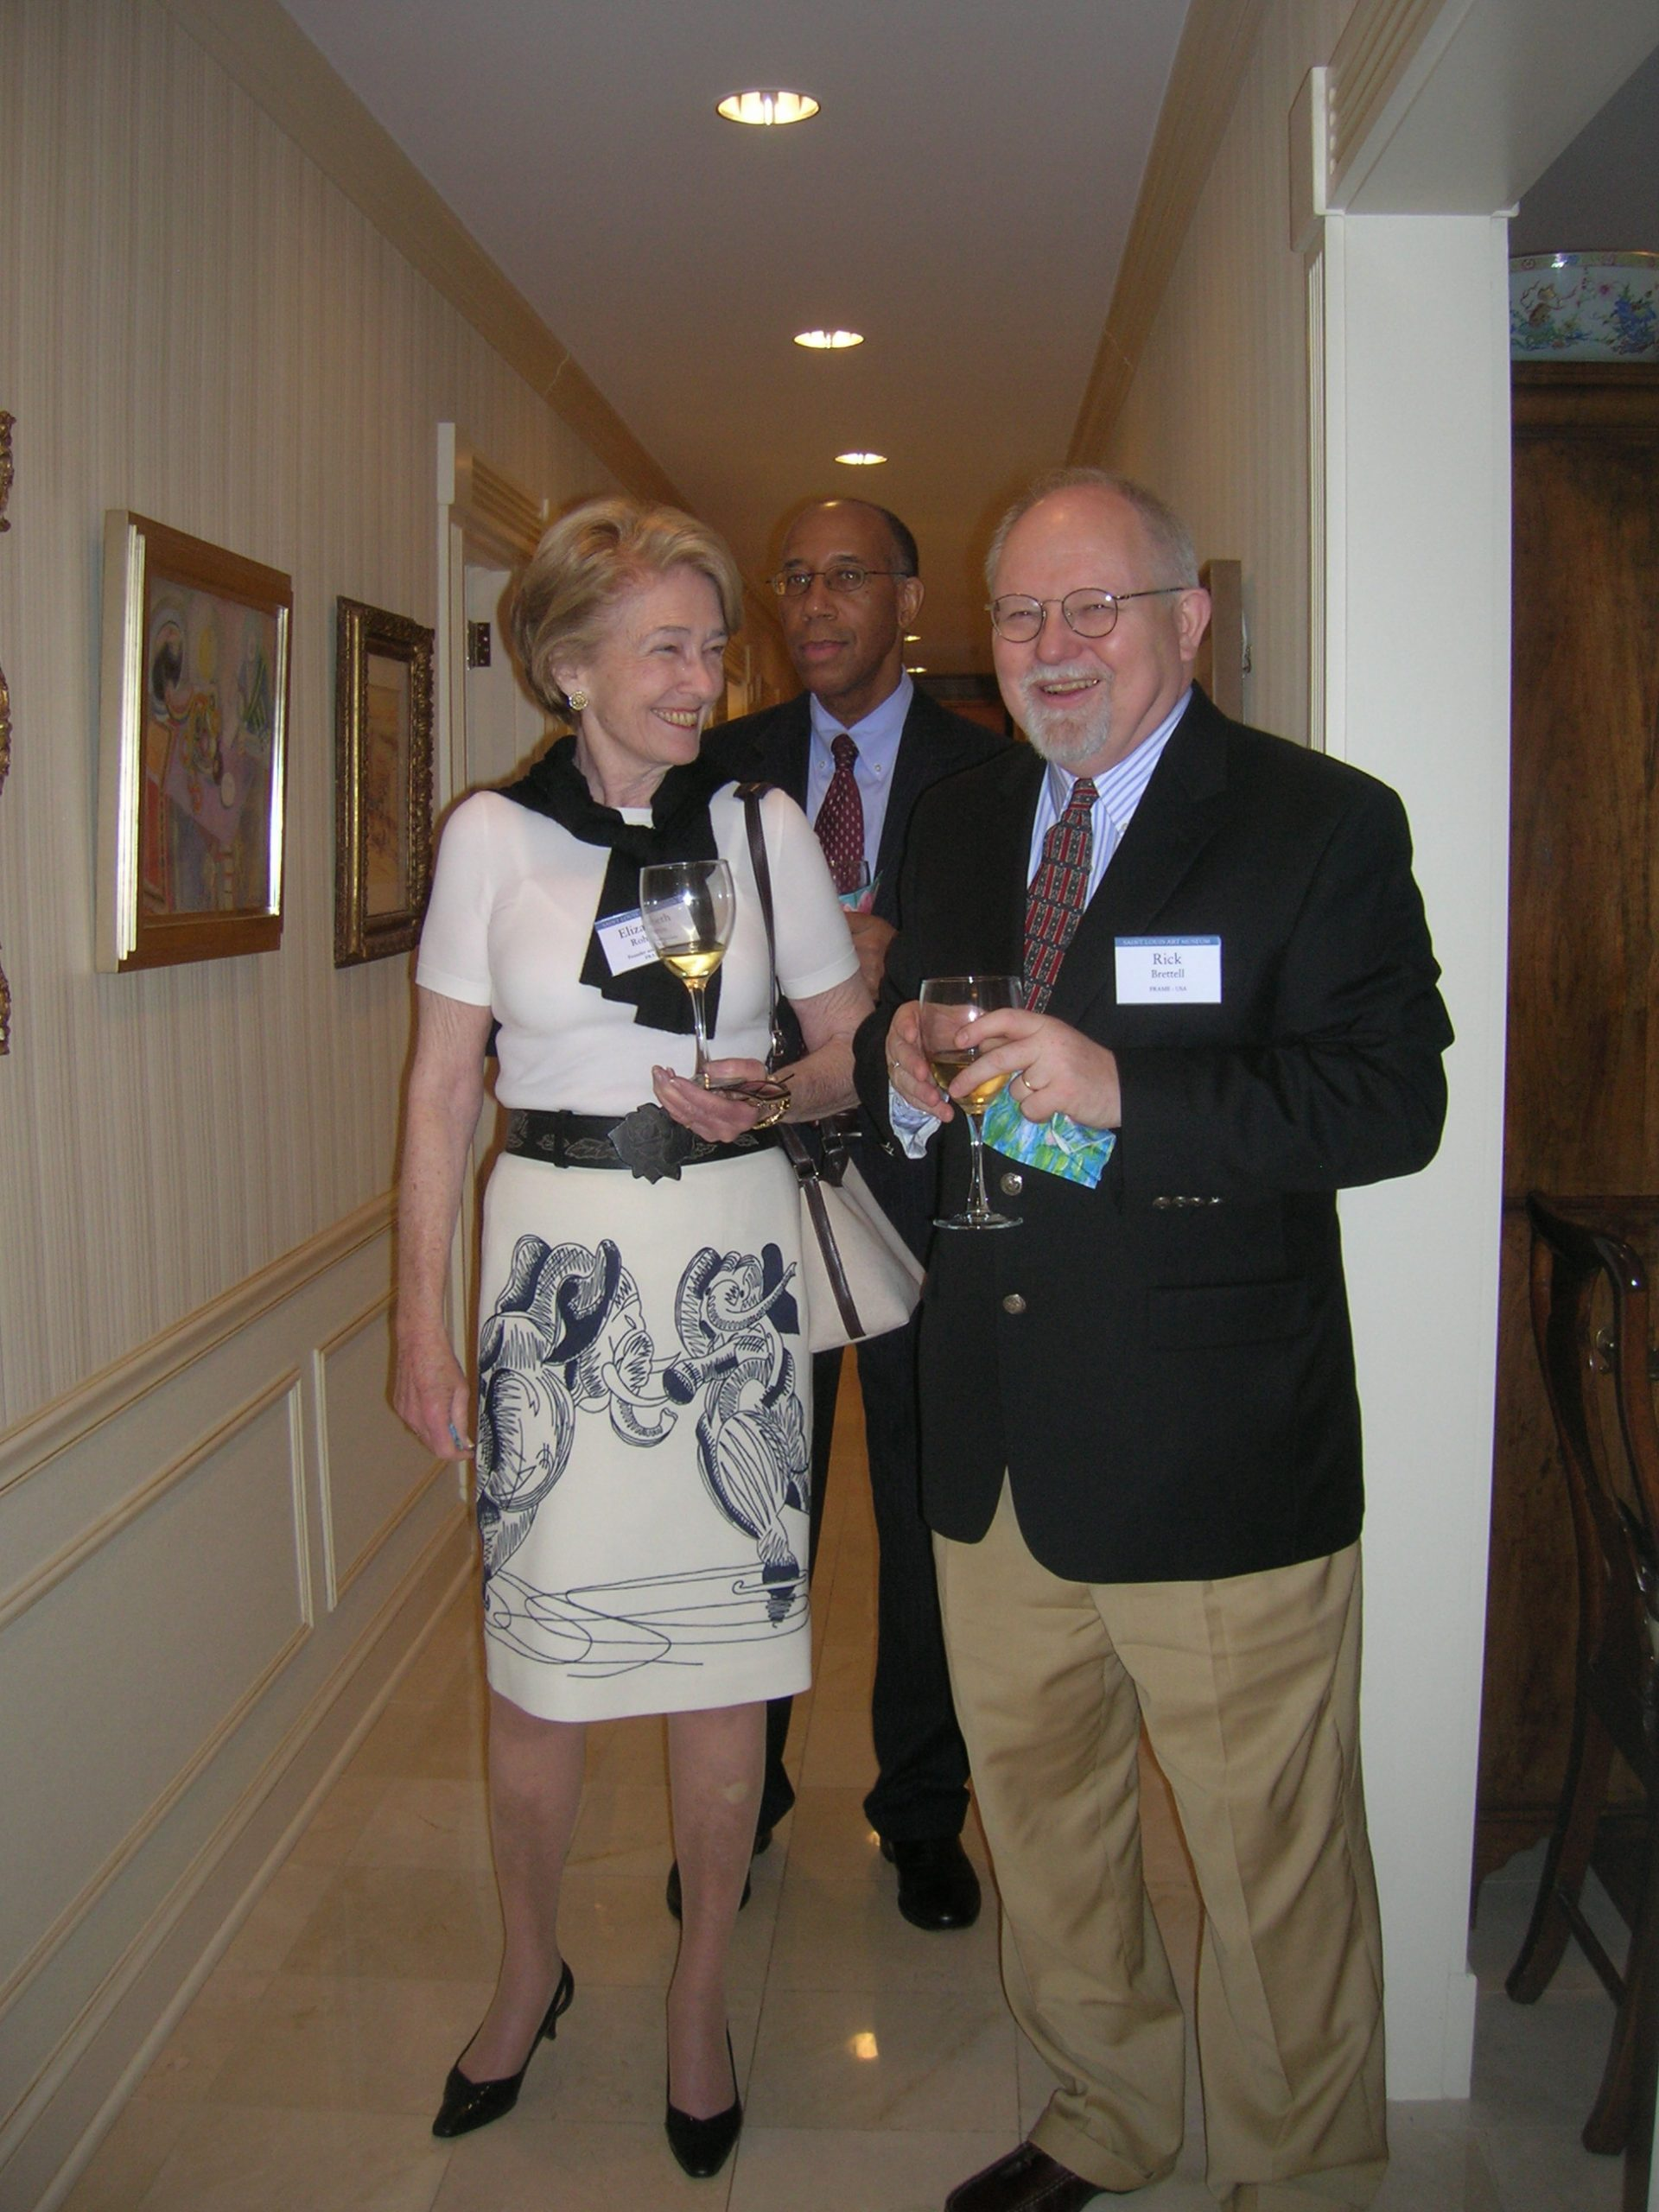 Elizabeth Rohatyn and Rick Brettell, Saint Louis, 2010.